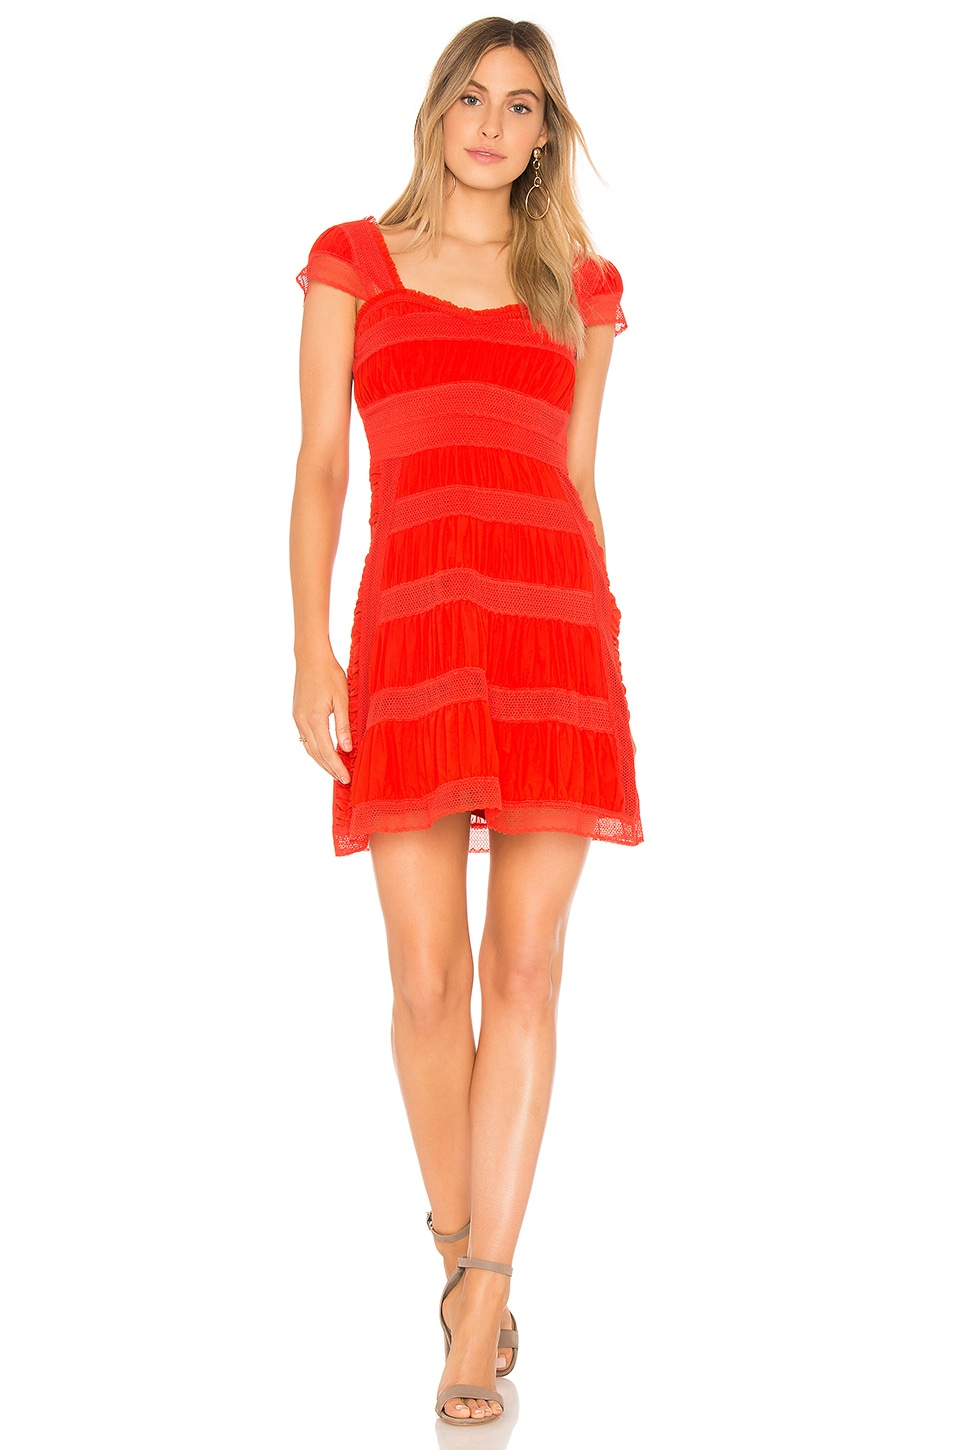 Free People Alicia Lace Mini Dress in Bright Red